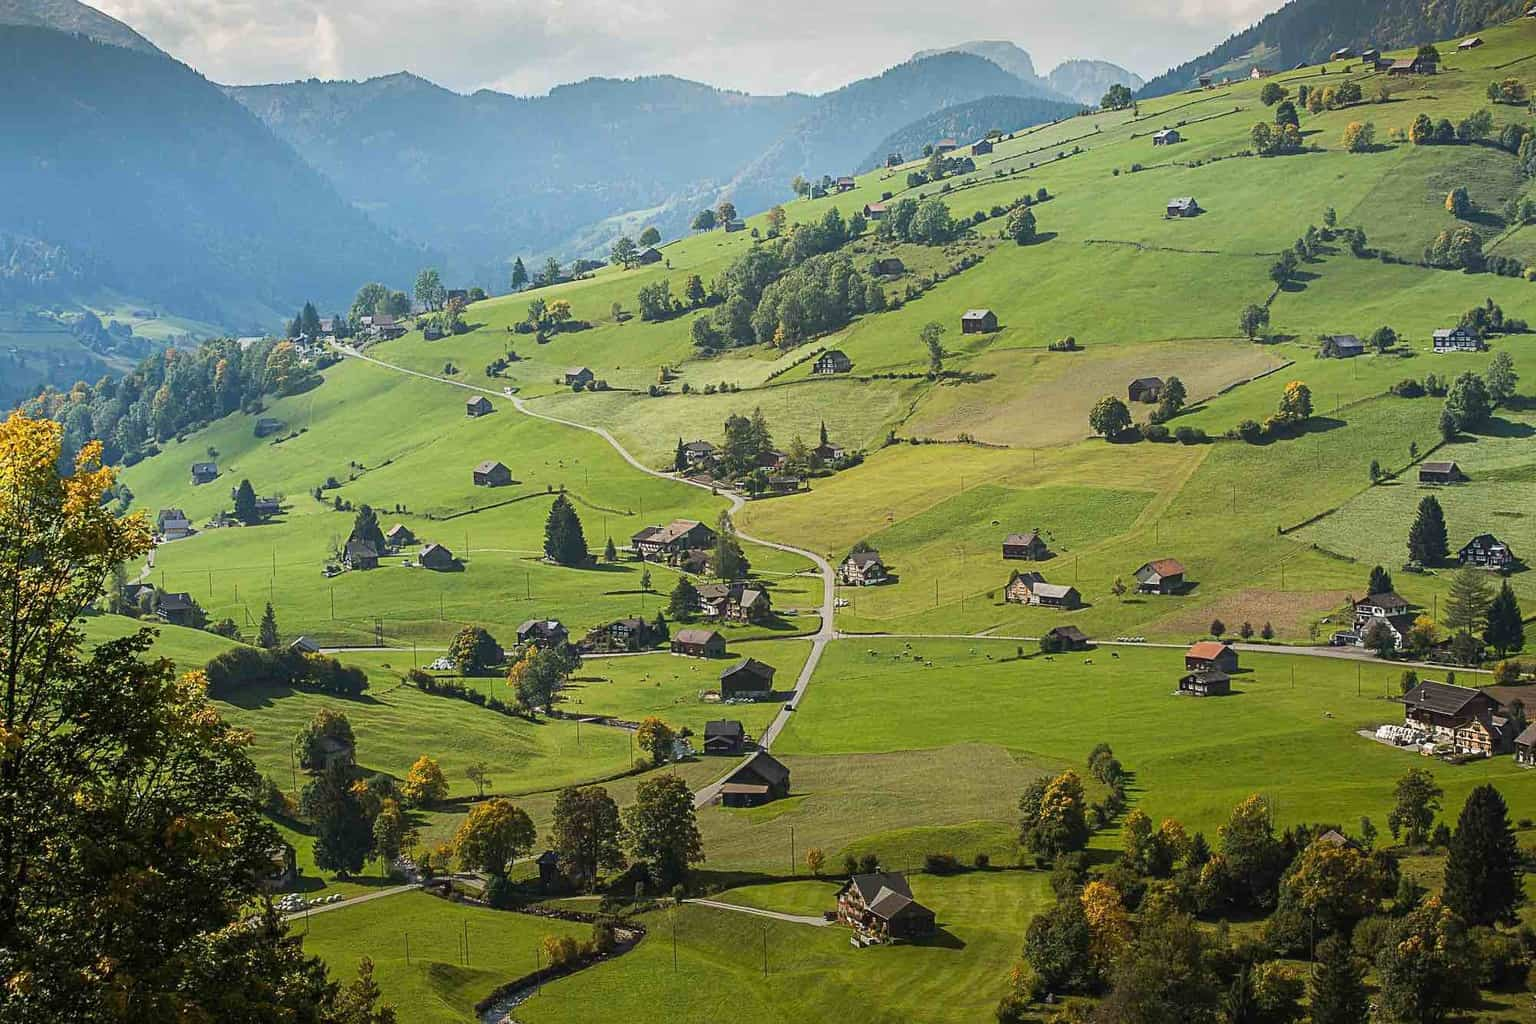 Hiking In the Toggenburg Region of Switzerland